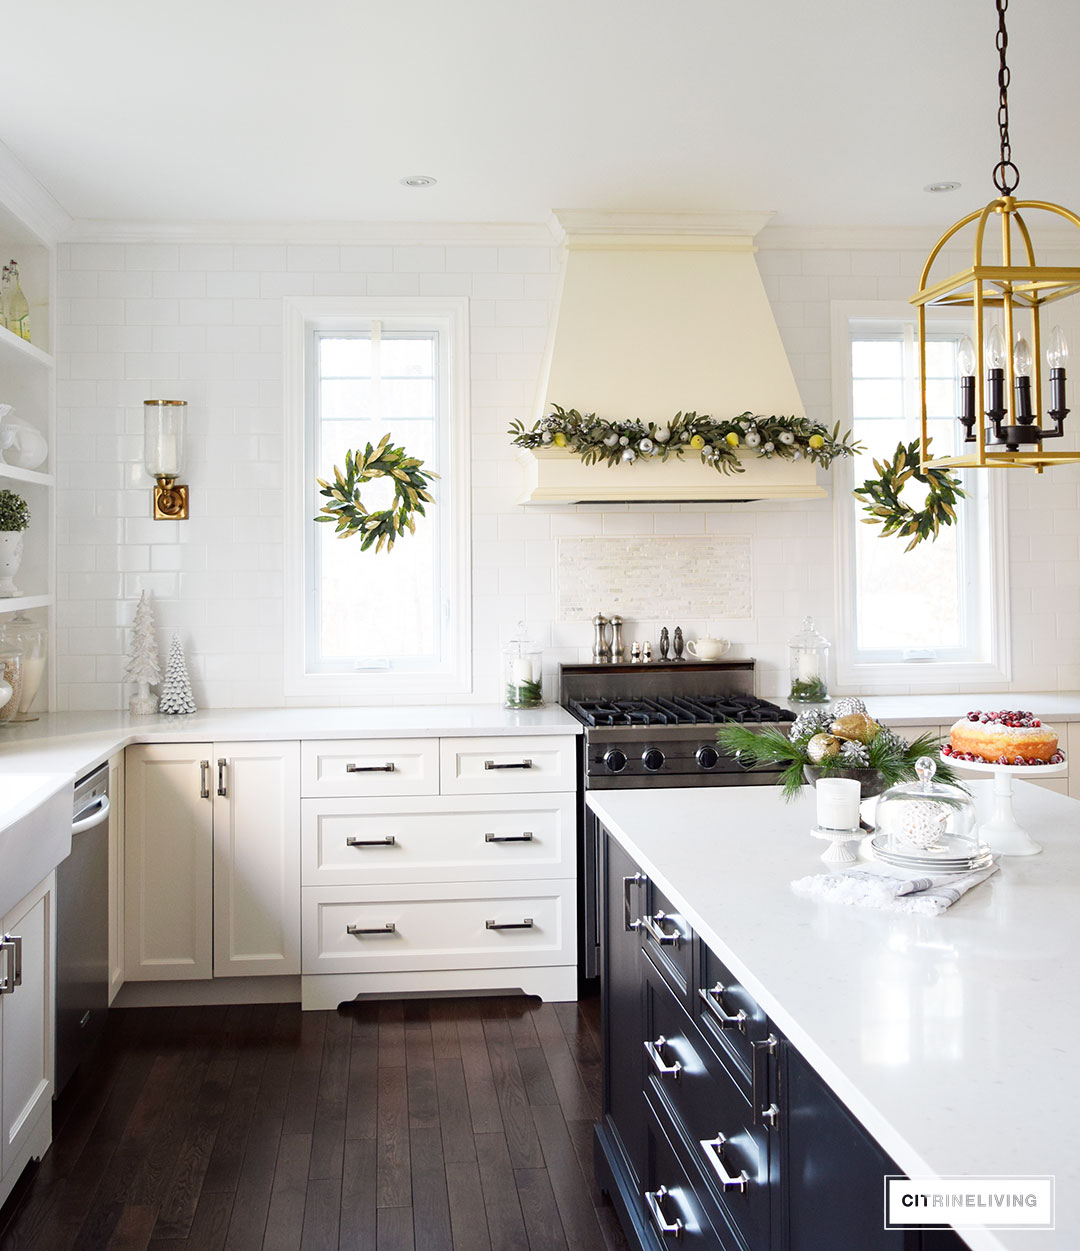 kitchen-christmas-magnolia-wreath-garland